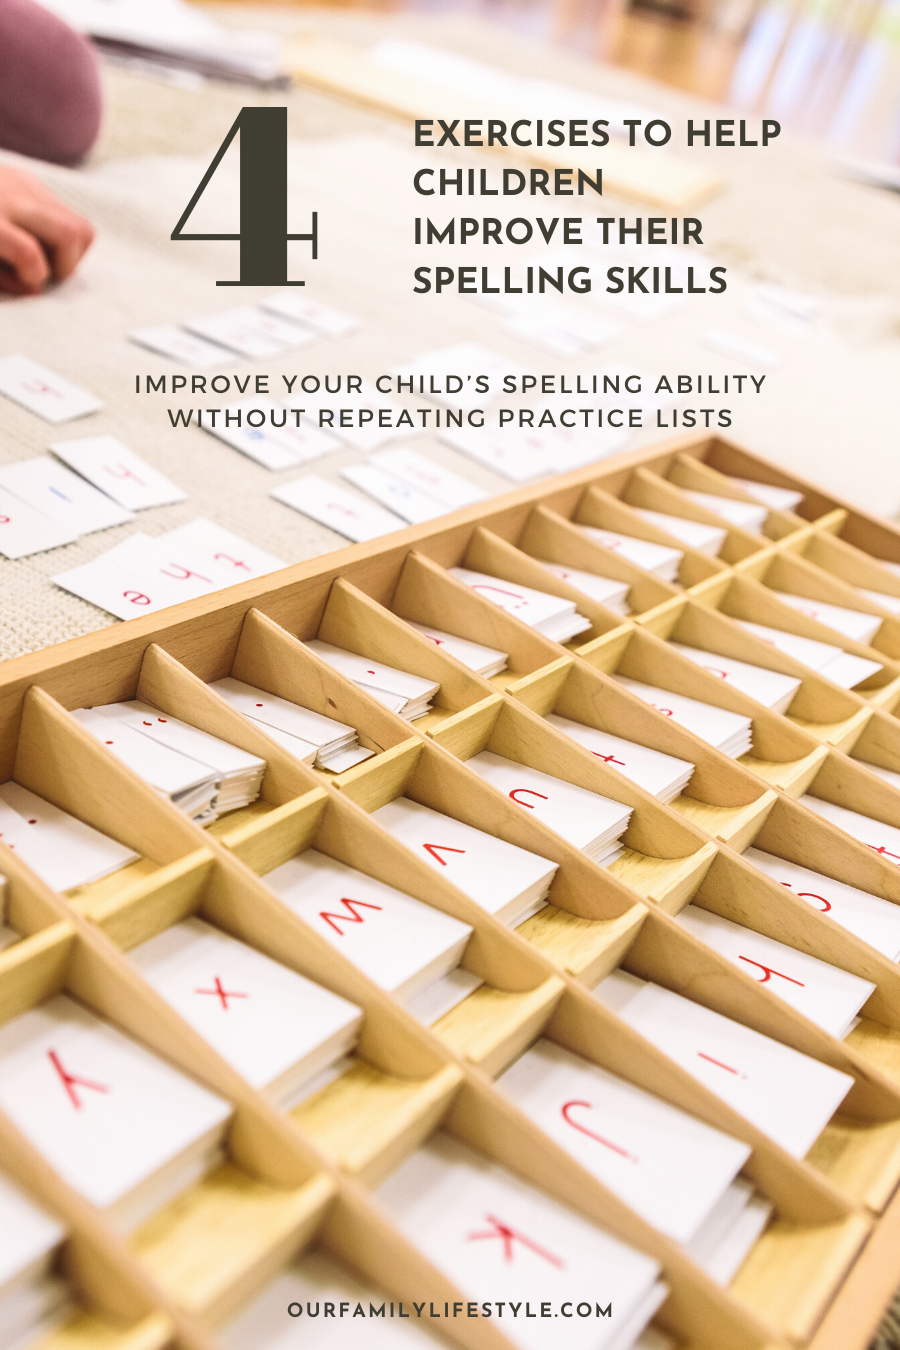 4 Great Exercises To Help Children Improve Their Spelling Skills